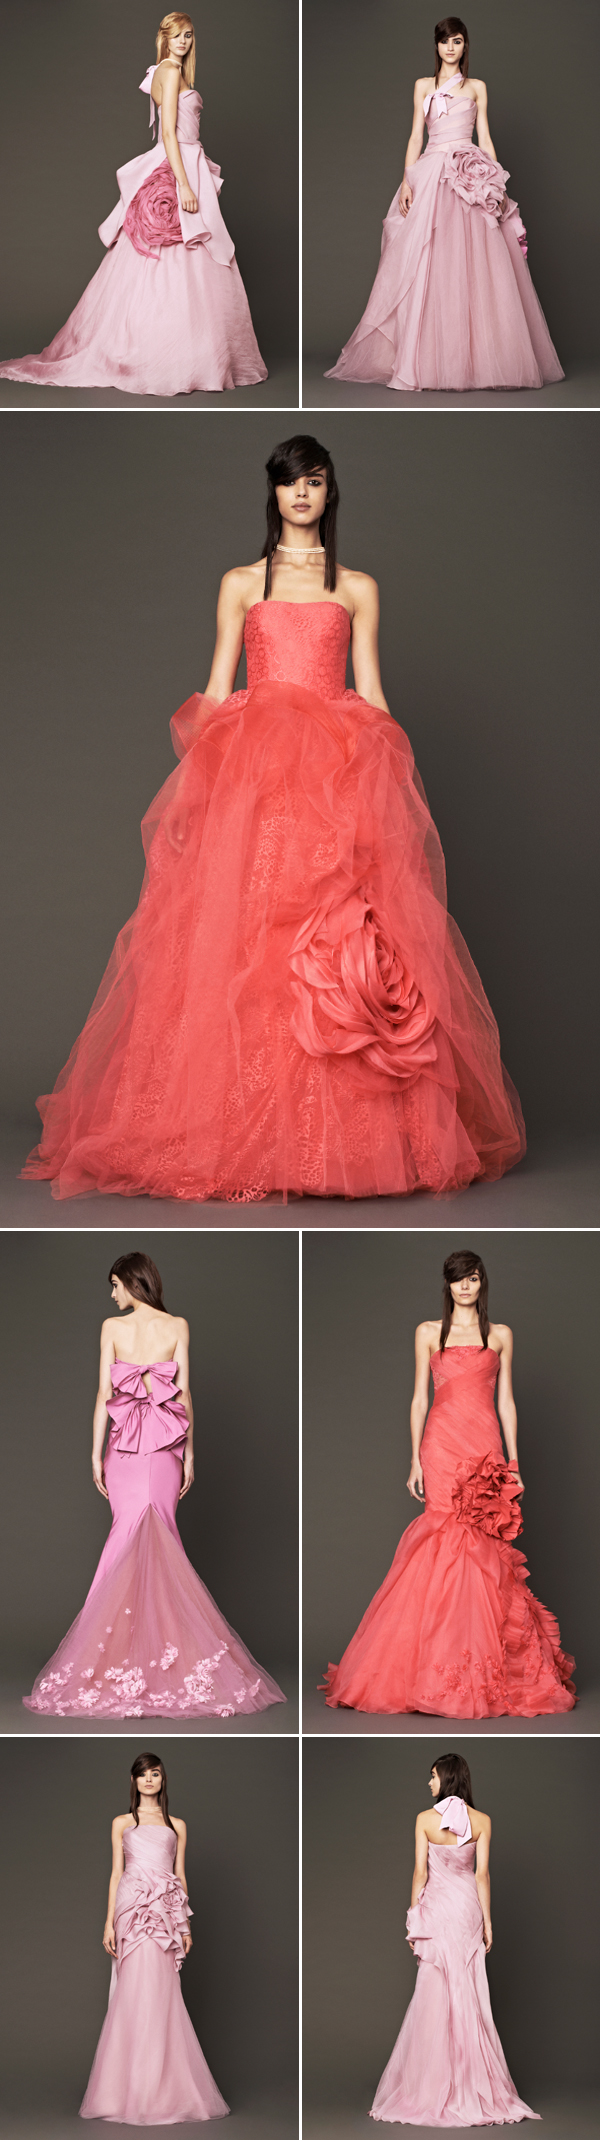 Wedding_Philippines_Beautiful_Floral_Inspired_Wedding_Dresses_Vera-Wang-Pink-and-Red-Floral-Wedding-Dresses